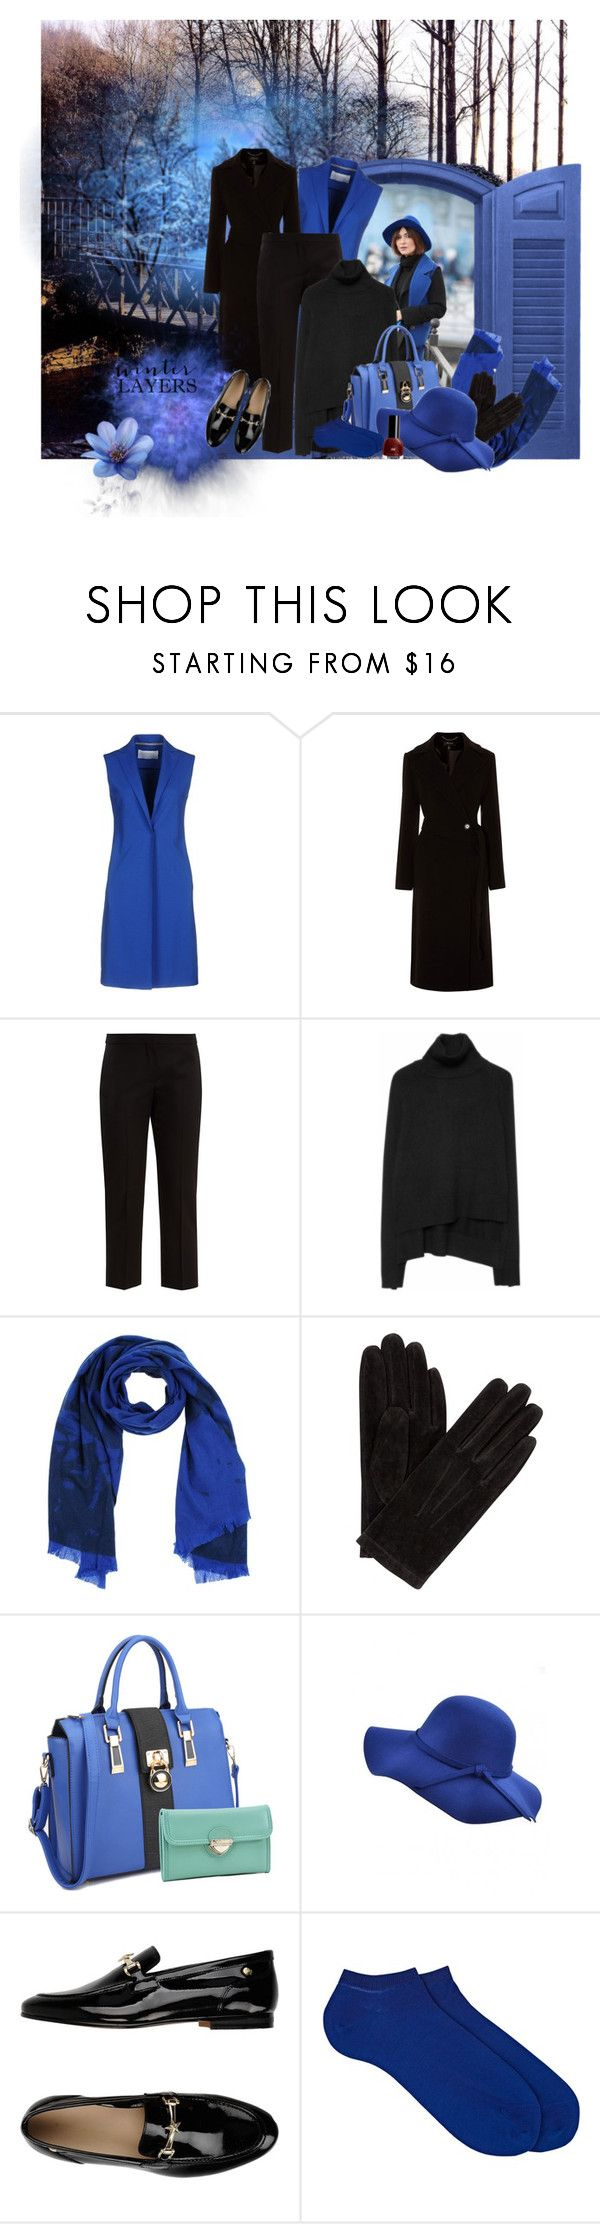 """""""Winter Layers: Waistcoat"""" by catsanddogs-563 ❤ liked on Polyvore featuring Harris Wharf London, Karen Millen, Alexander McQueen, Zadig & Voltaire, McQ by Alexander McQueen, John Lewis, Dasein, WithChic, Tommy Hilfiger and Barneys New York"""